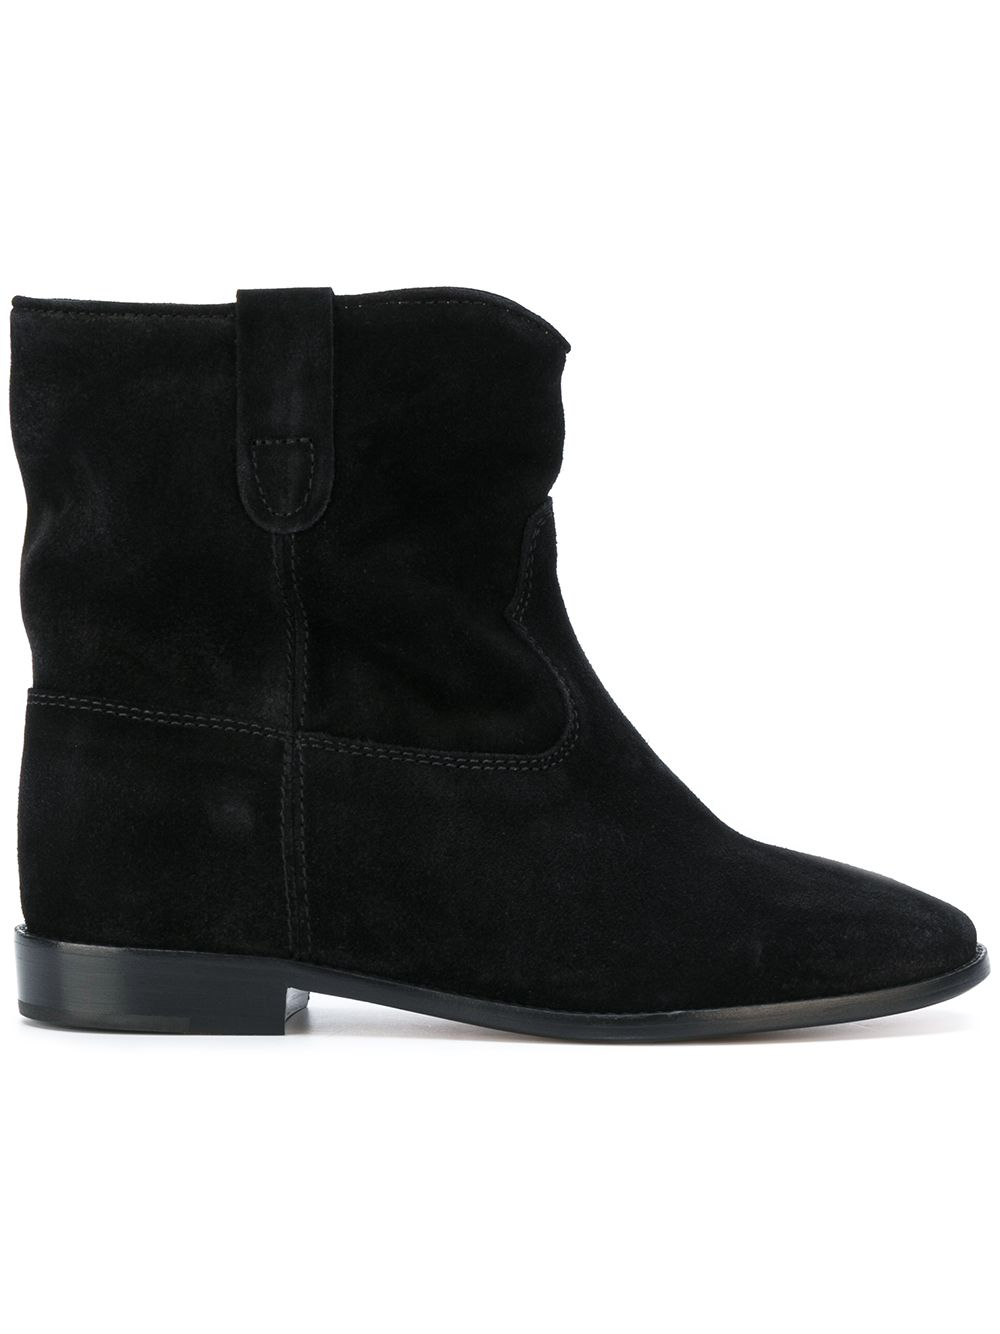 Crisi Leather Ankle Boots